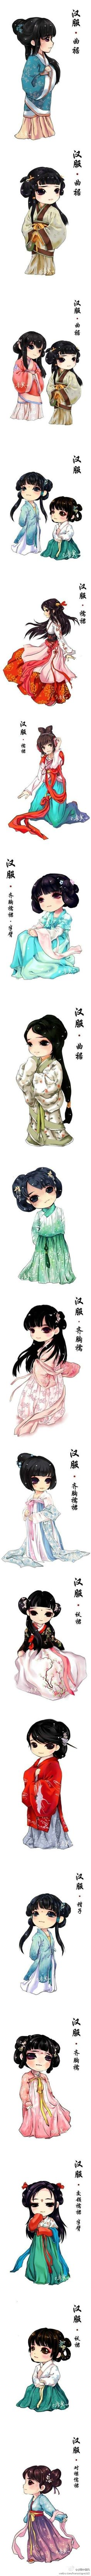 Chinese dress, hanfu - the nice thing about this drawing set is it's simple enough to see and understand what's going on in the outfit